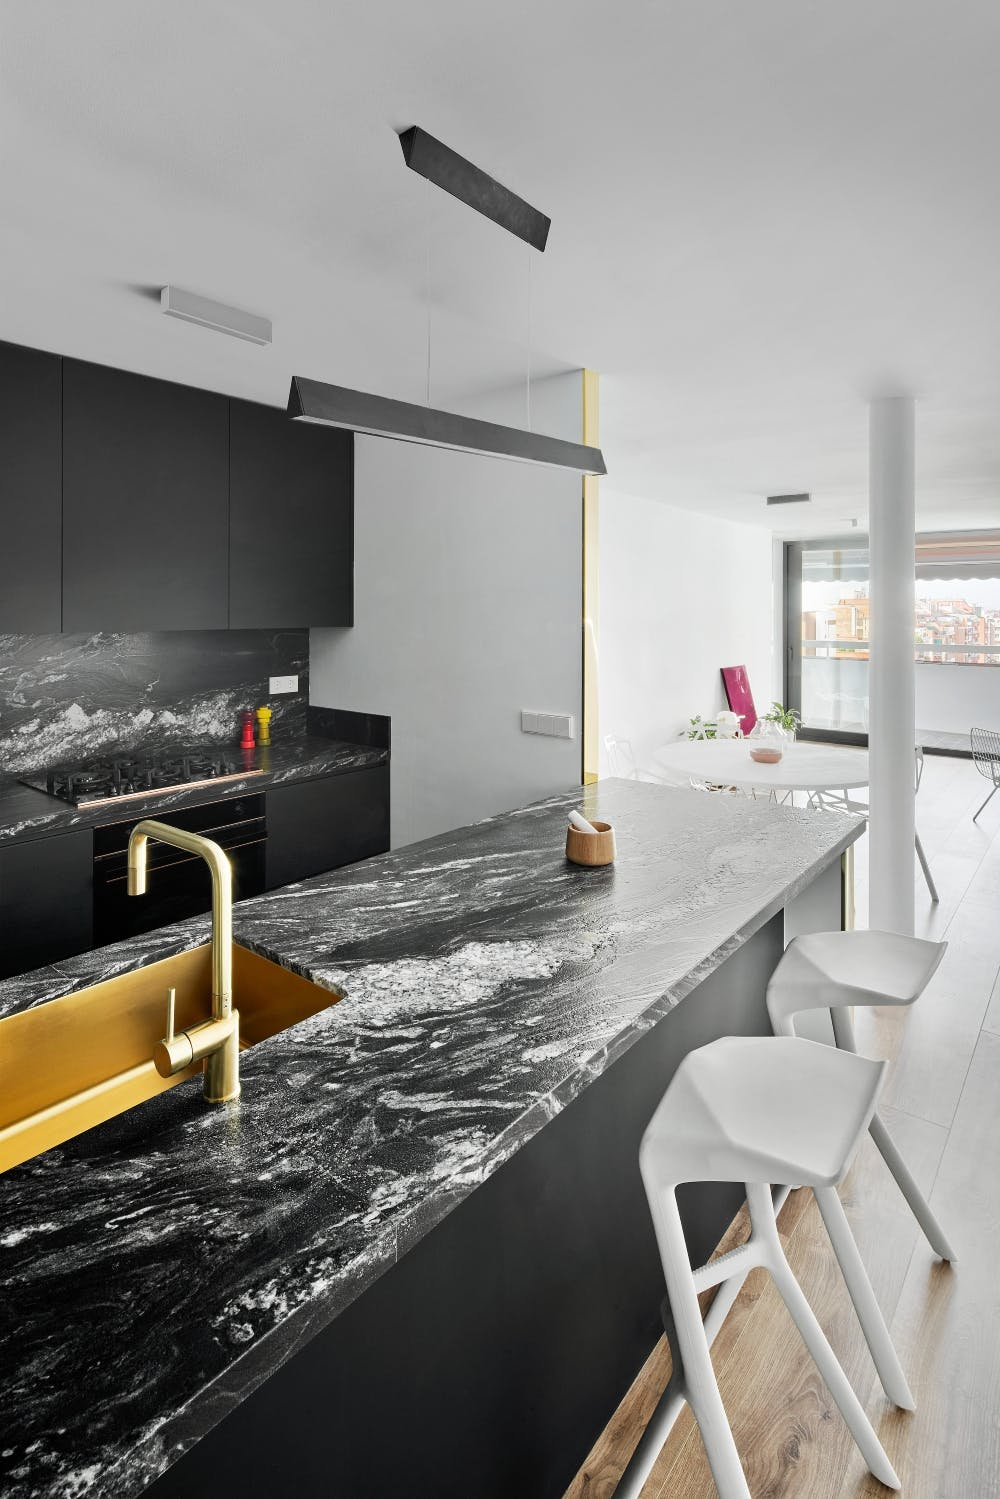 Image of 2art 1 in Connected spaces creating an open and brilliant home - Cosentino